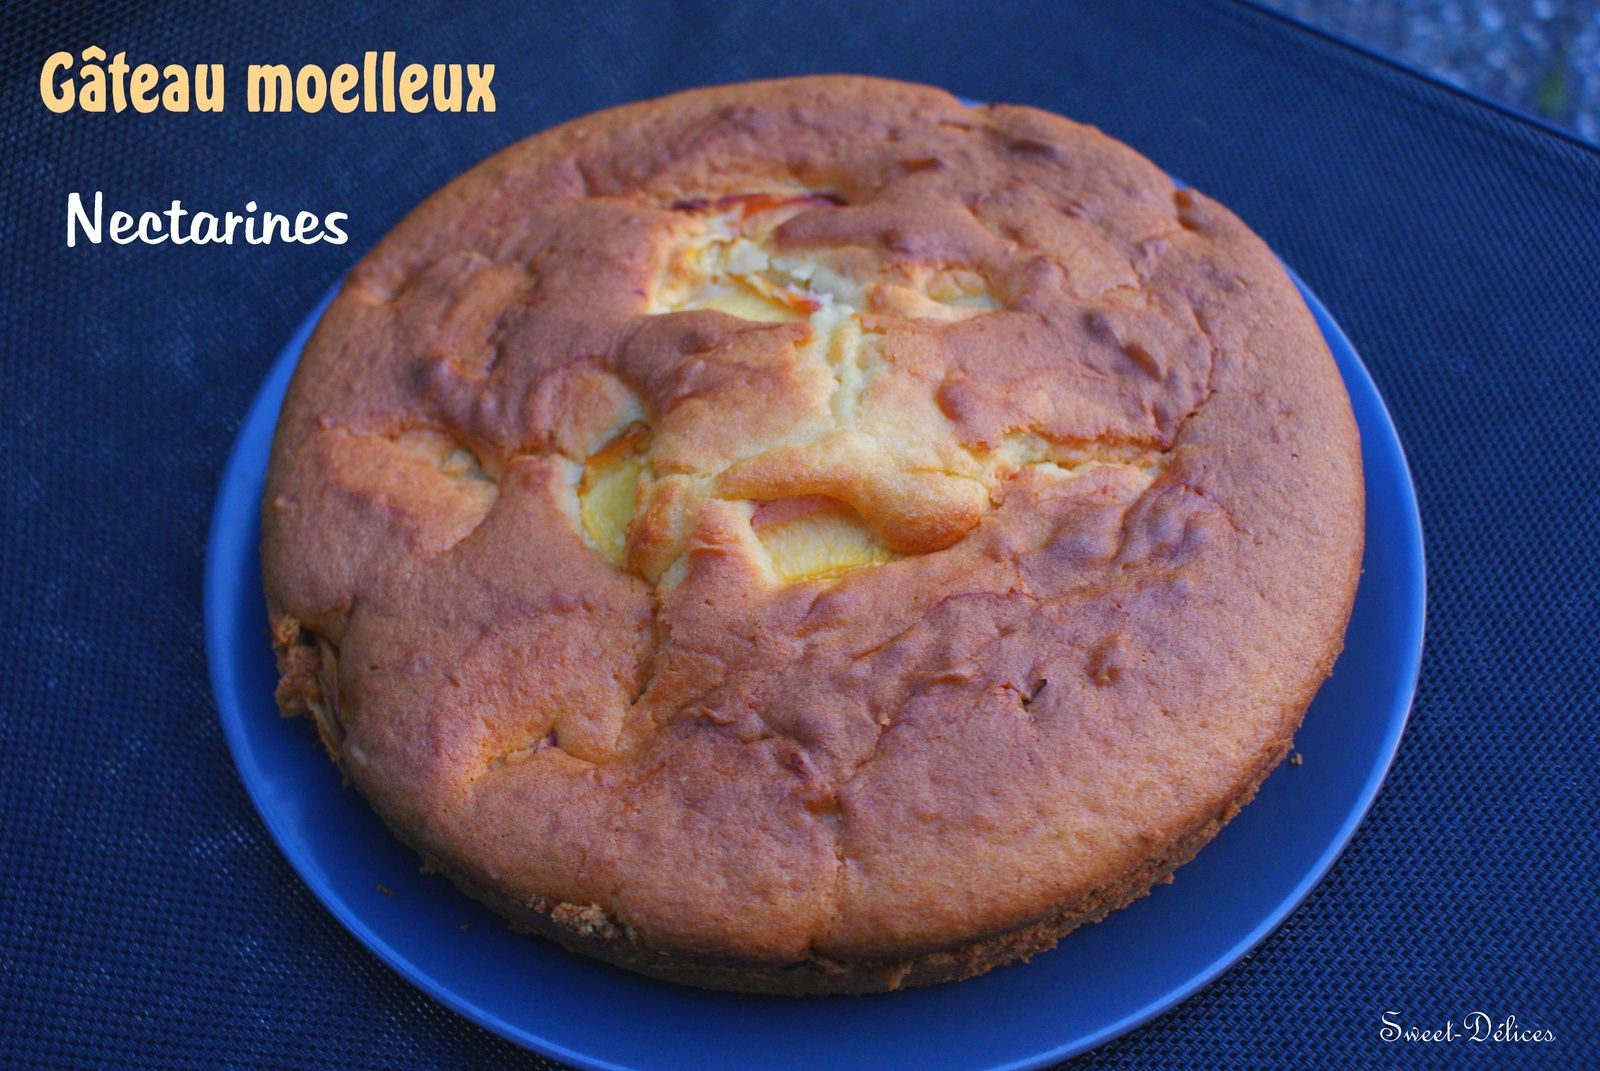 Gâteau moelleux aux Nectarines - Thermomix